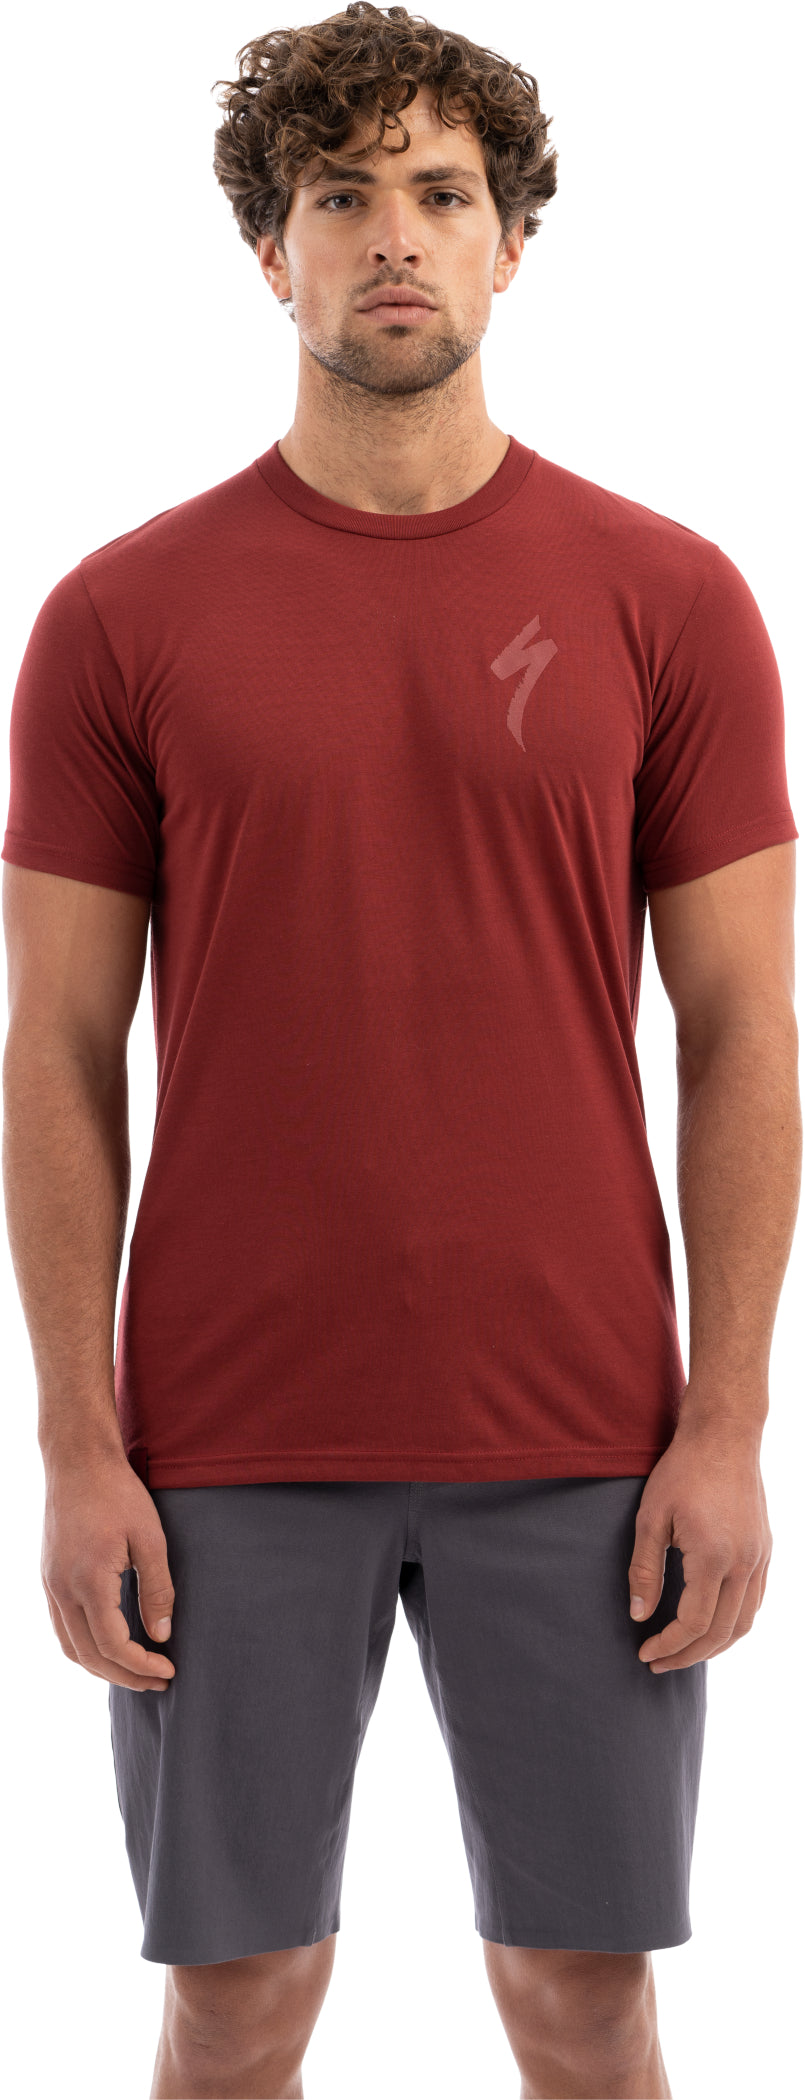 Men's Specialized T-Shirt